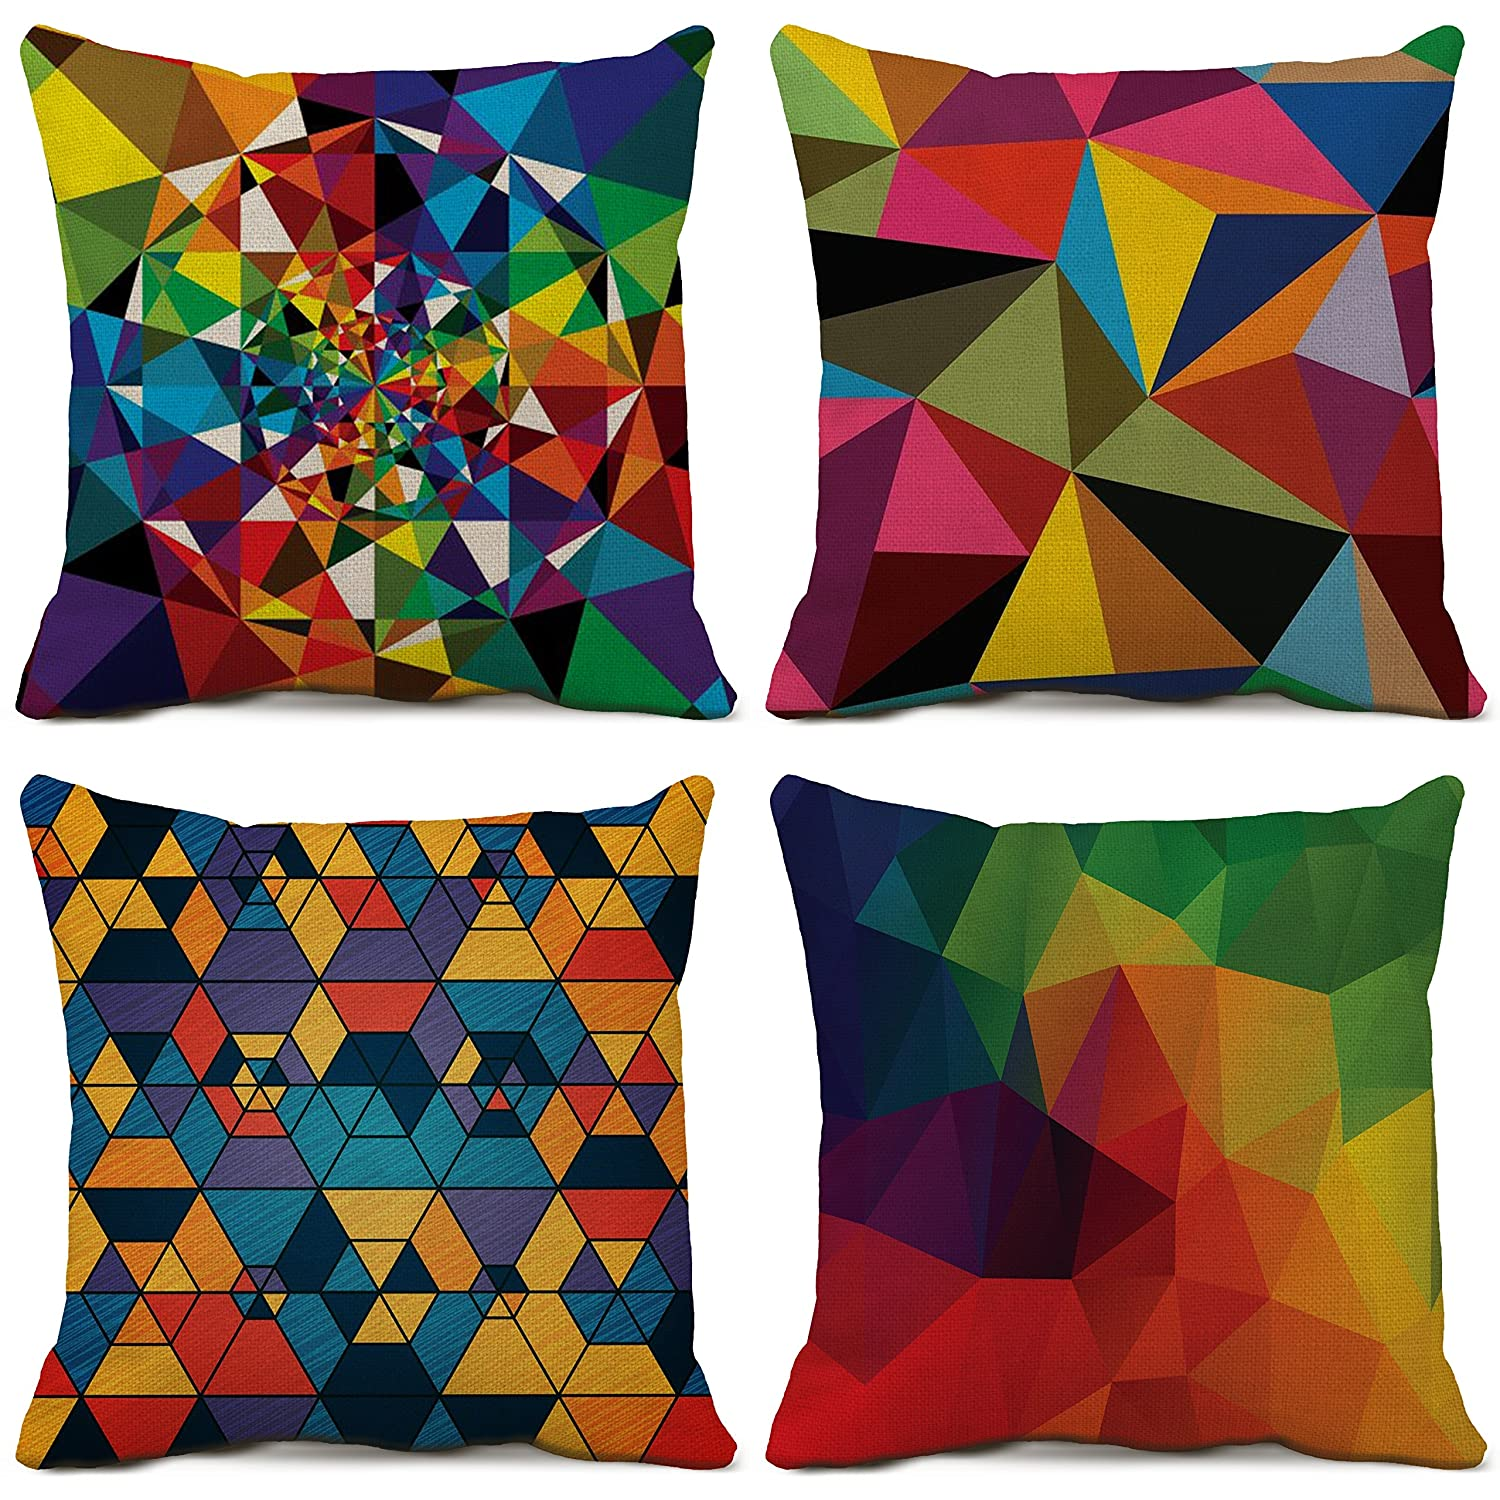 Amazon Com Colorful Geometry Decorative Throw Pillow Covers Cotton